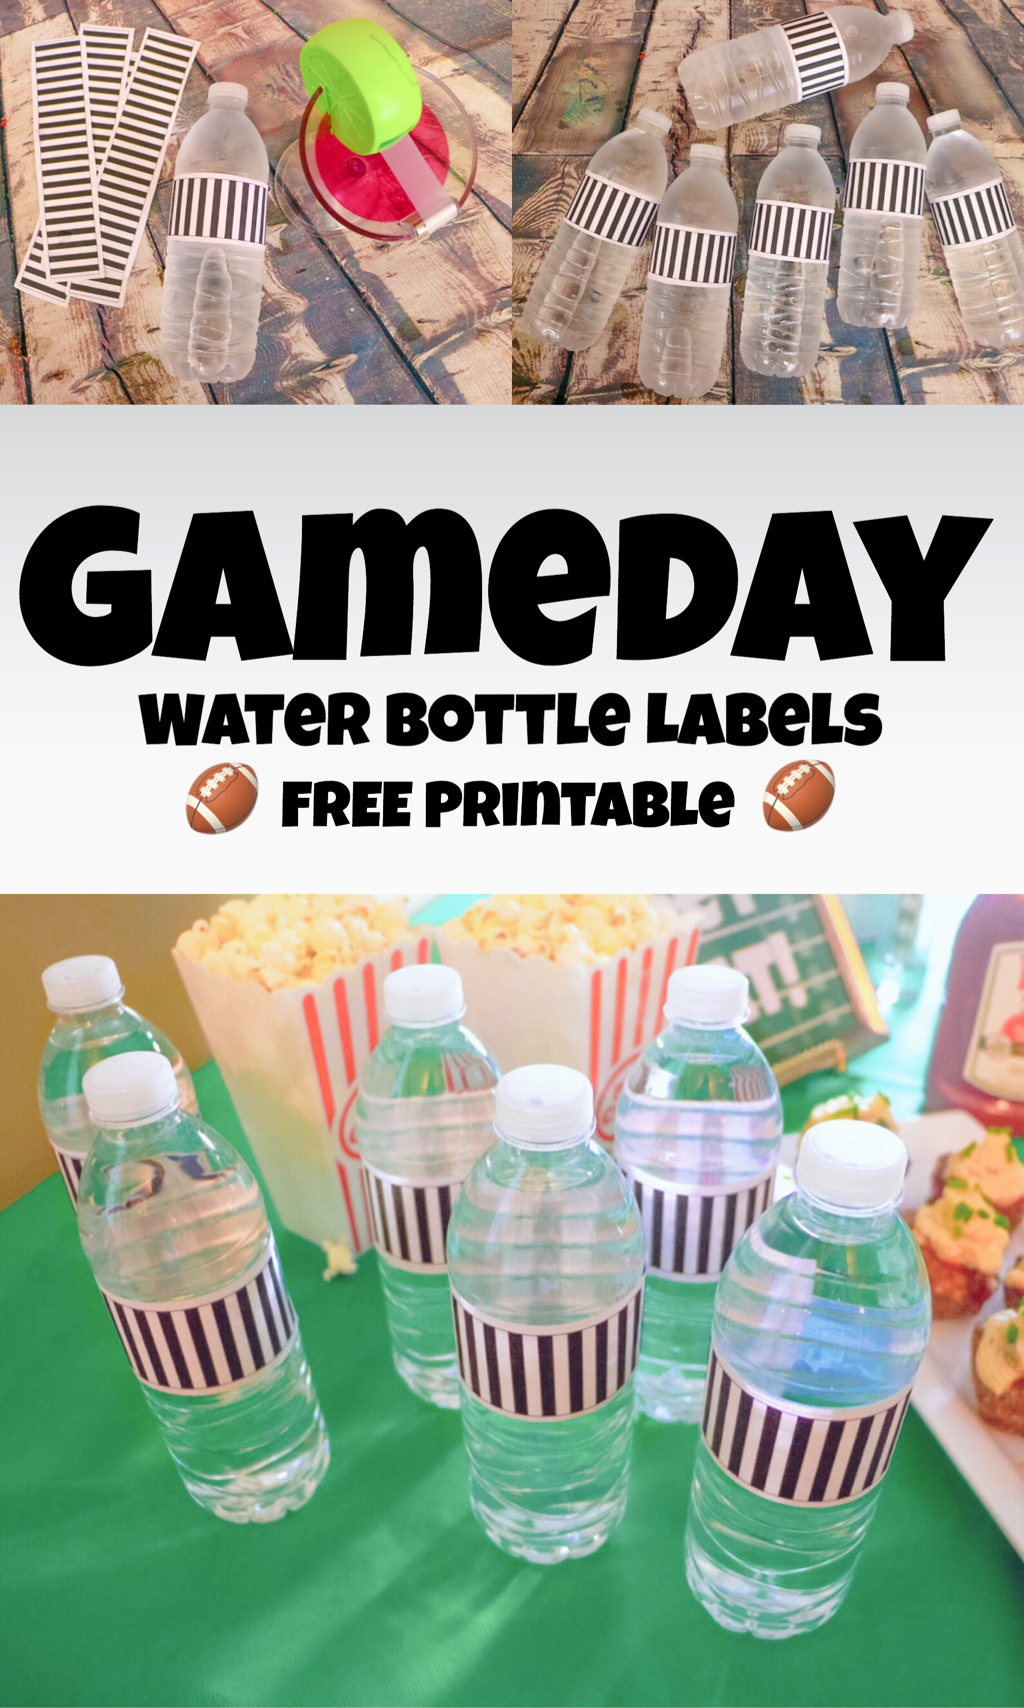 image relating to Printable Water Bottle Labels Free known as GAMEDAY H2o BOTTLE LABELS ~ Totally free PRINTABLE - The Trophy